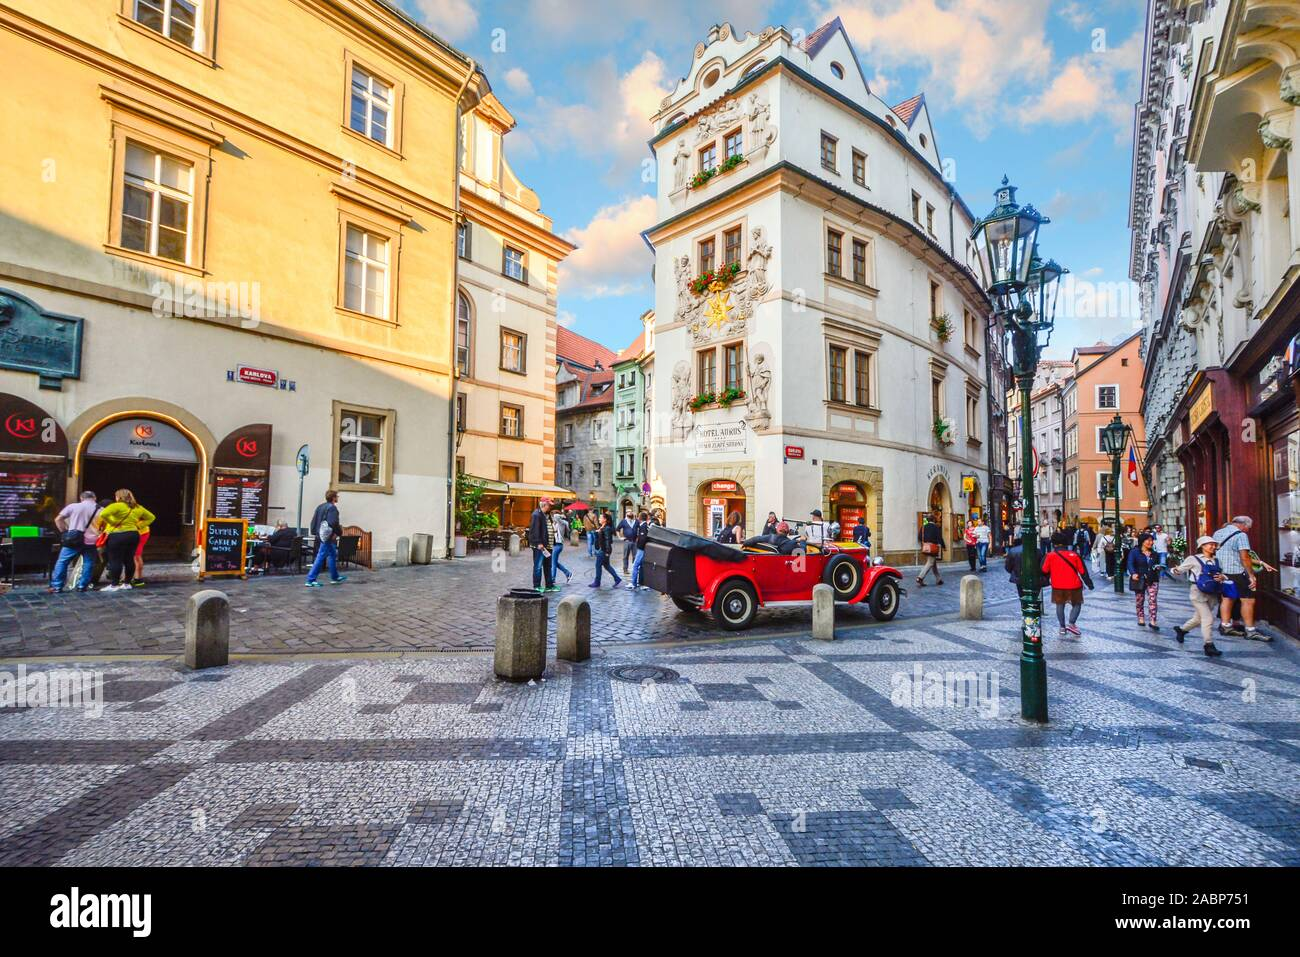 Tourists sightsee, shop and enjoy the cafes as they pass by a vintage red automobile in a picturesque section of Old Town Prague, Czech Republic. Stock Photo